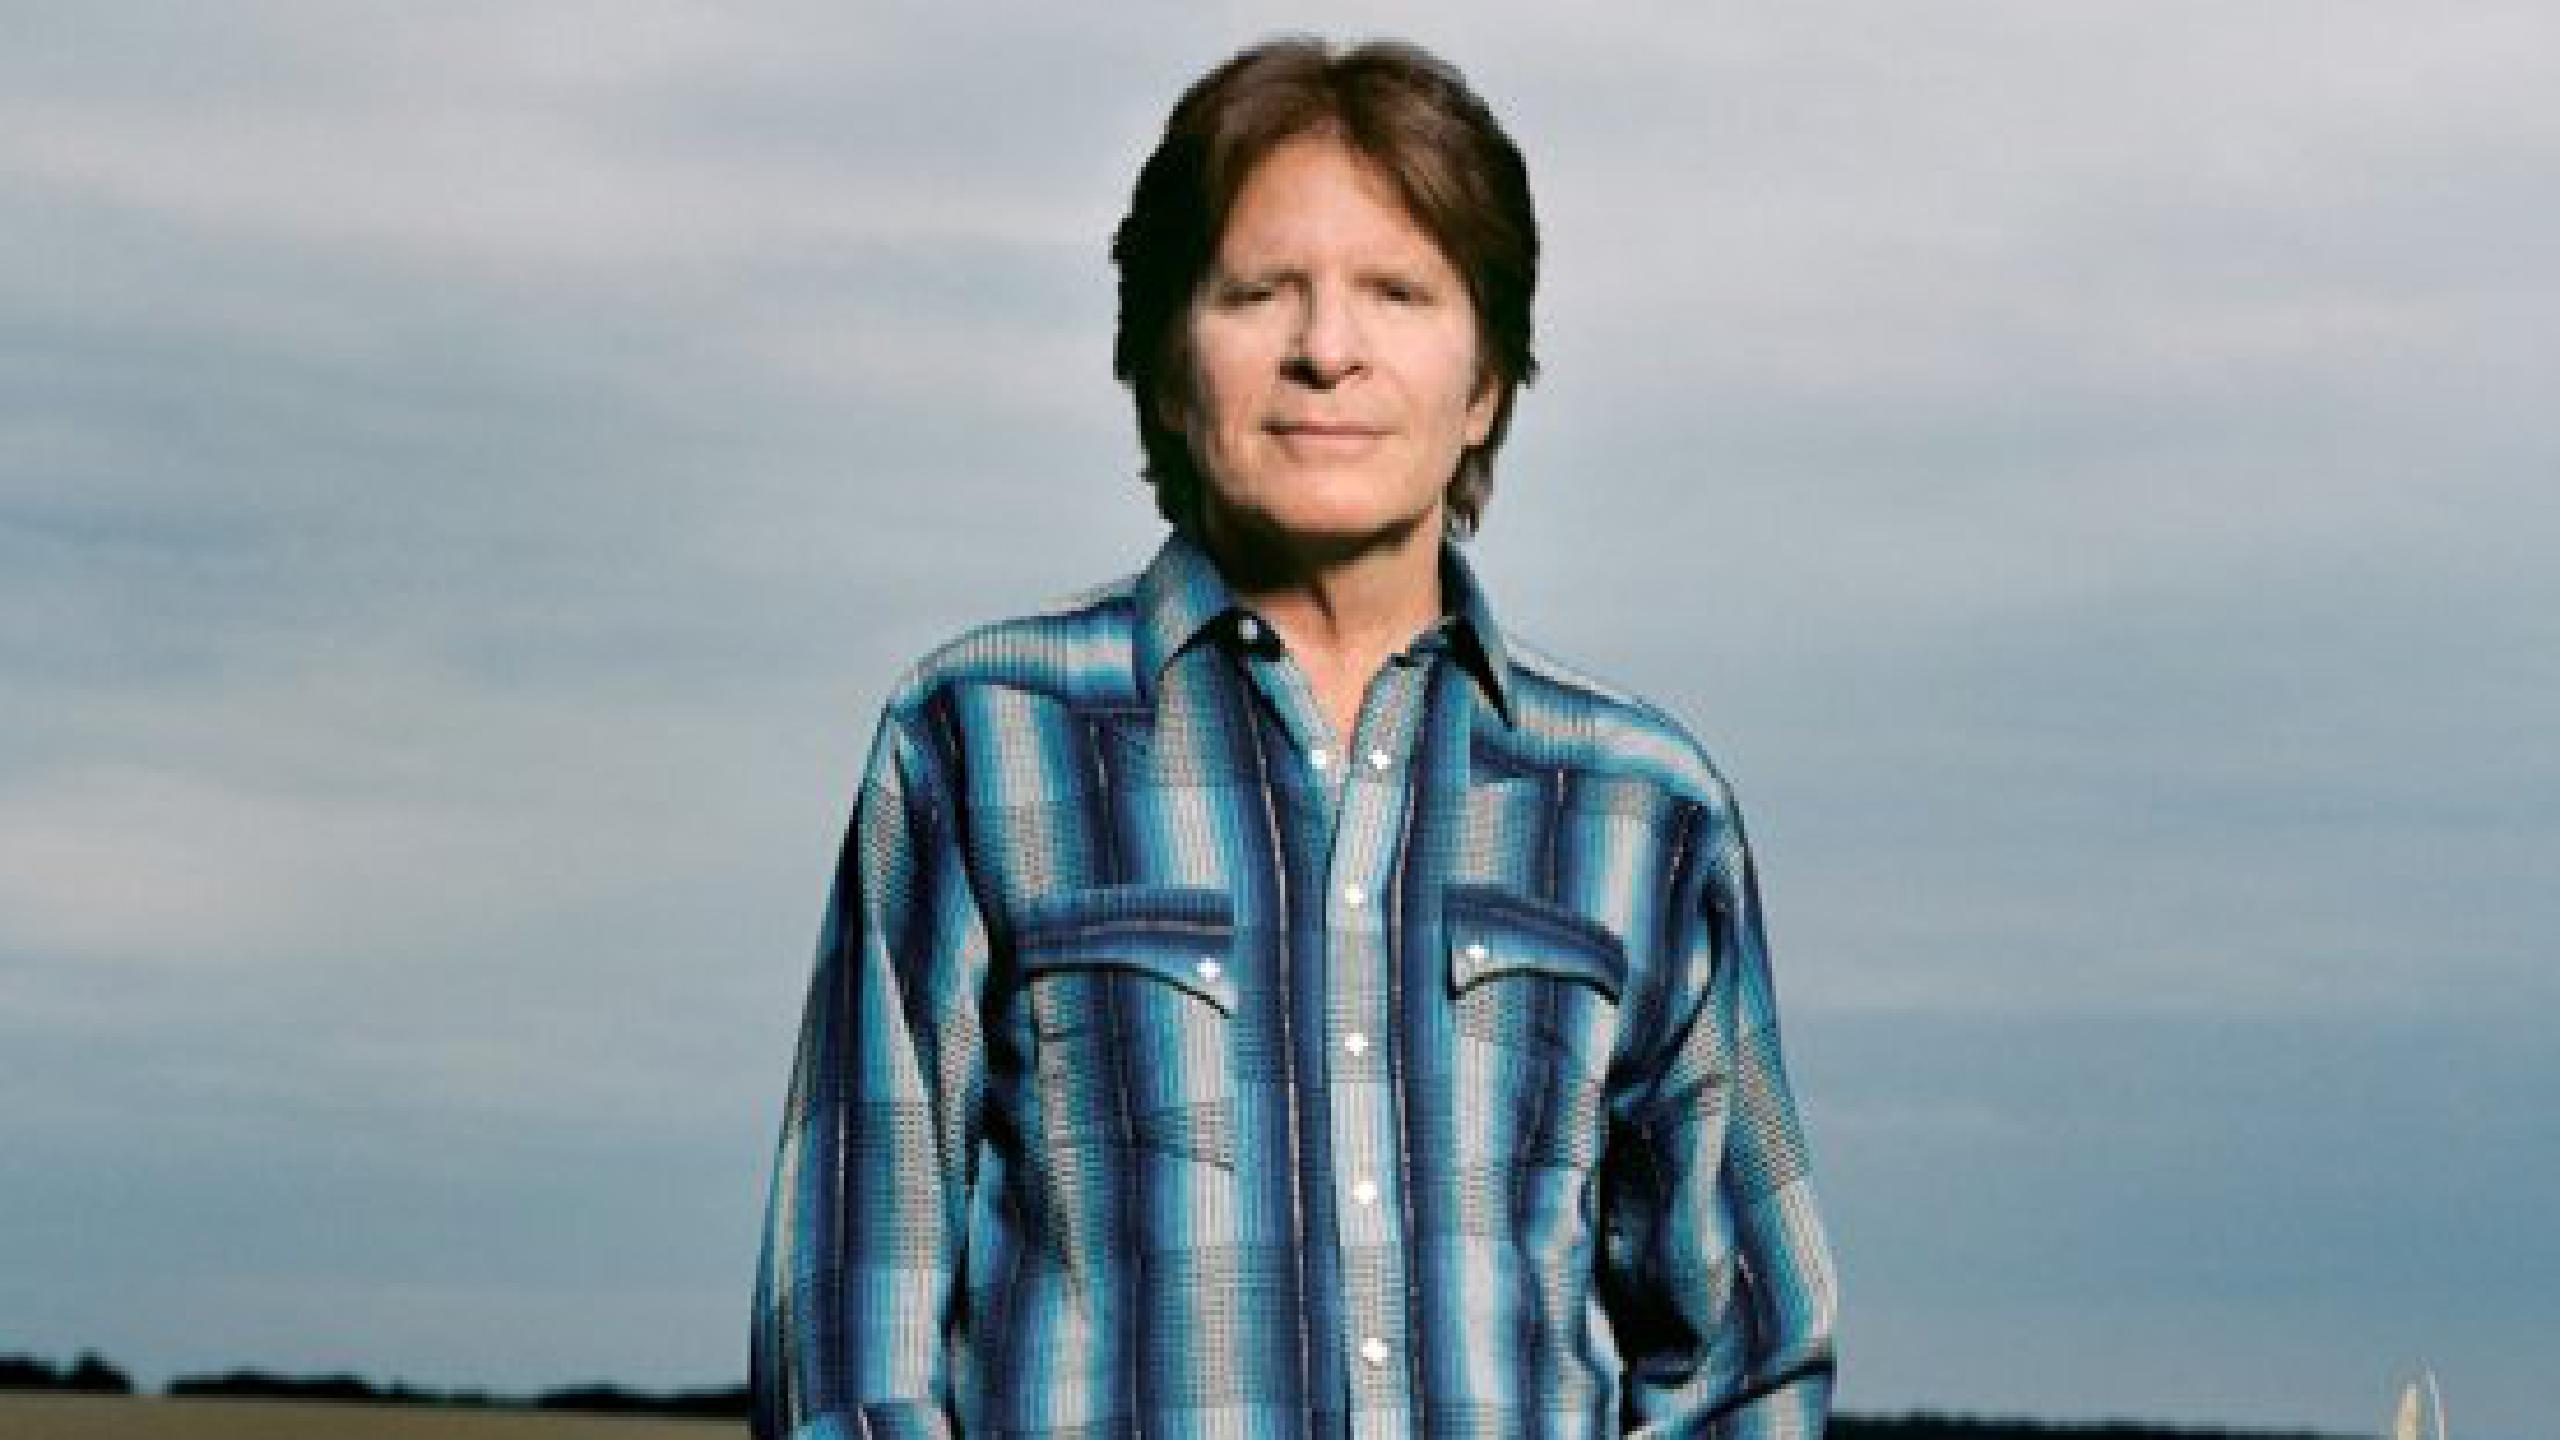 John Fogerty Tour Dates 2020 John Fogerty tour dates 2019 2020. John Fogerty tickets and